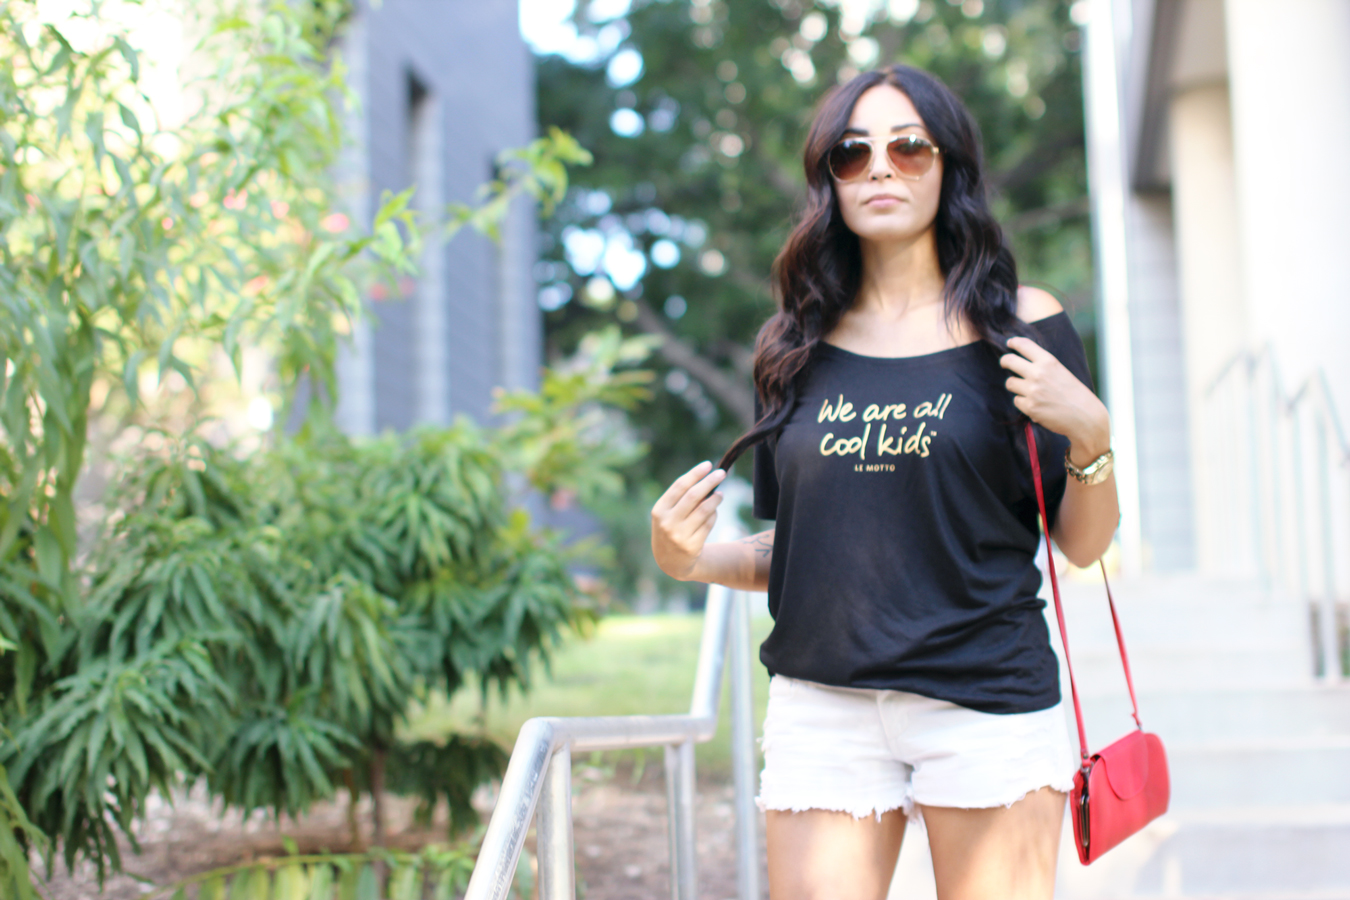 FIXIN-TO-THRILL-LE-MOTTO-ATX-AUSTIN-STYLE-BLOG-SKINNY-SHORTS-SANDALS-SHIRTS-WORDS-EMPOWERMENT-SPONSORED-TRENDS-FW15-TRENDY-CHIC-GLAM-FASHION-TEXAS-BLACK-7